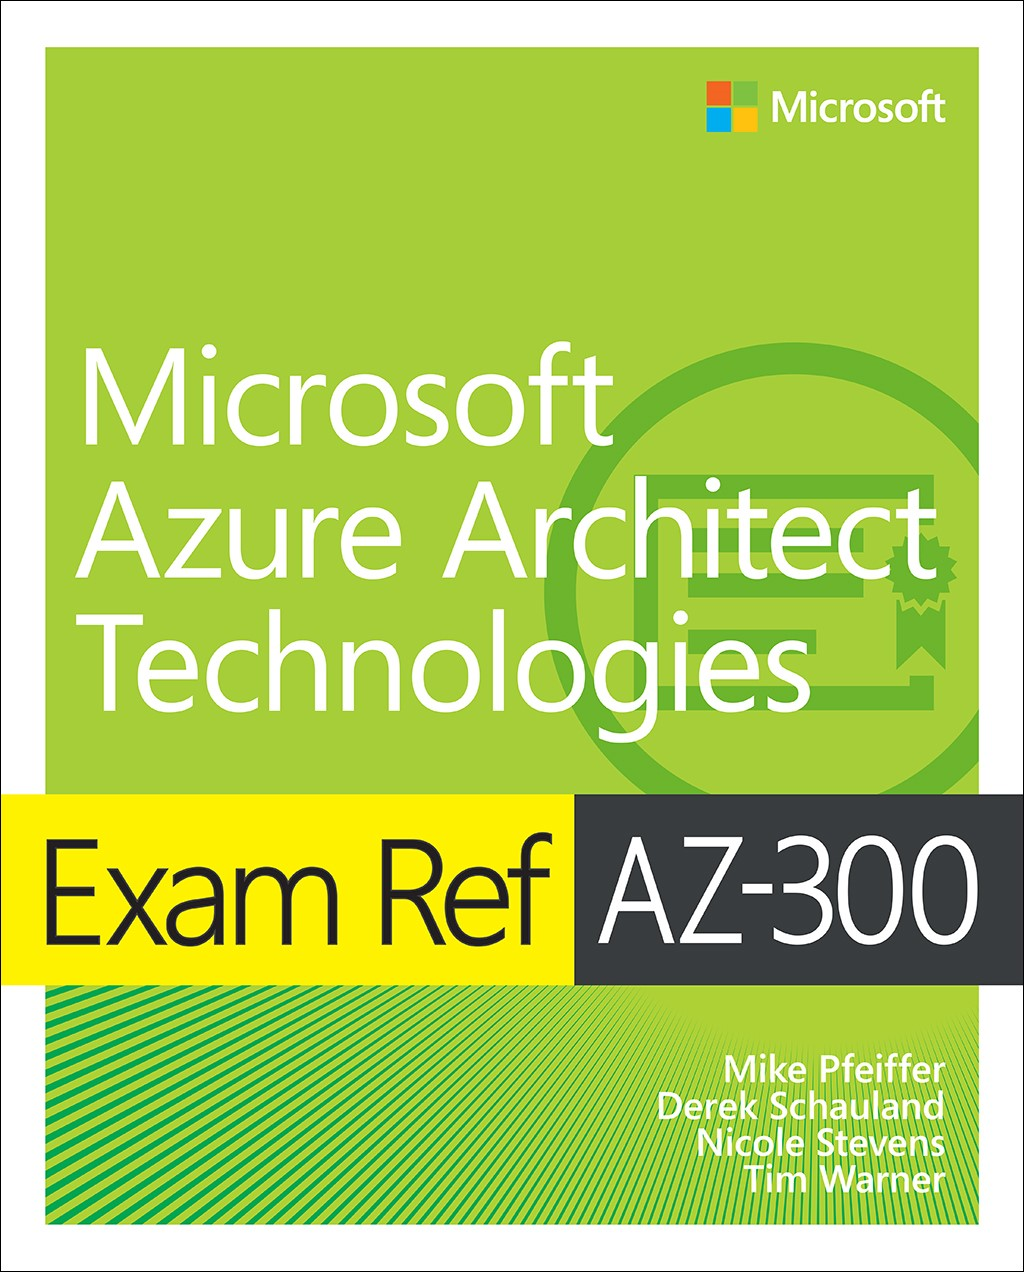 Exam Ref HPE6-A75 Aruba Certified Edge Professional Exam